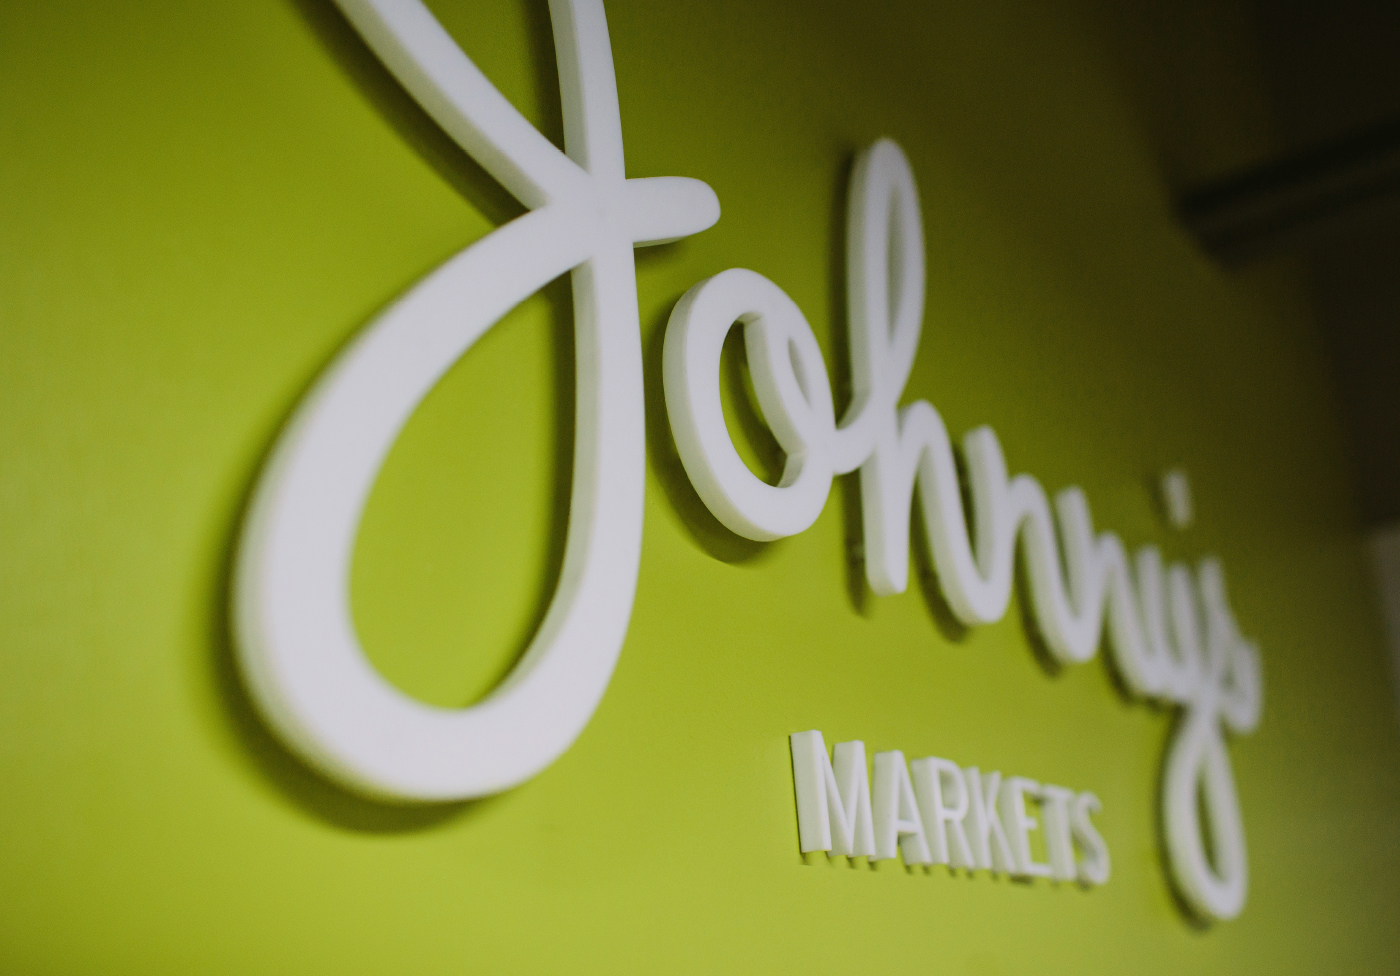 Johnny's Markets Raised Lettering Signage